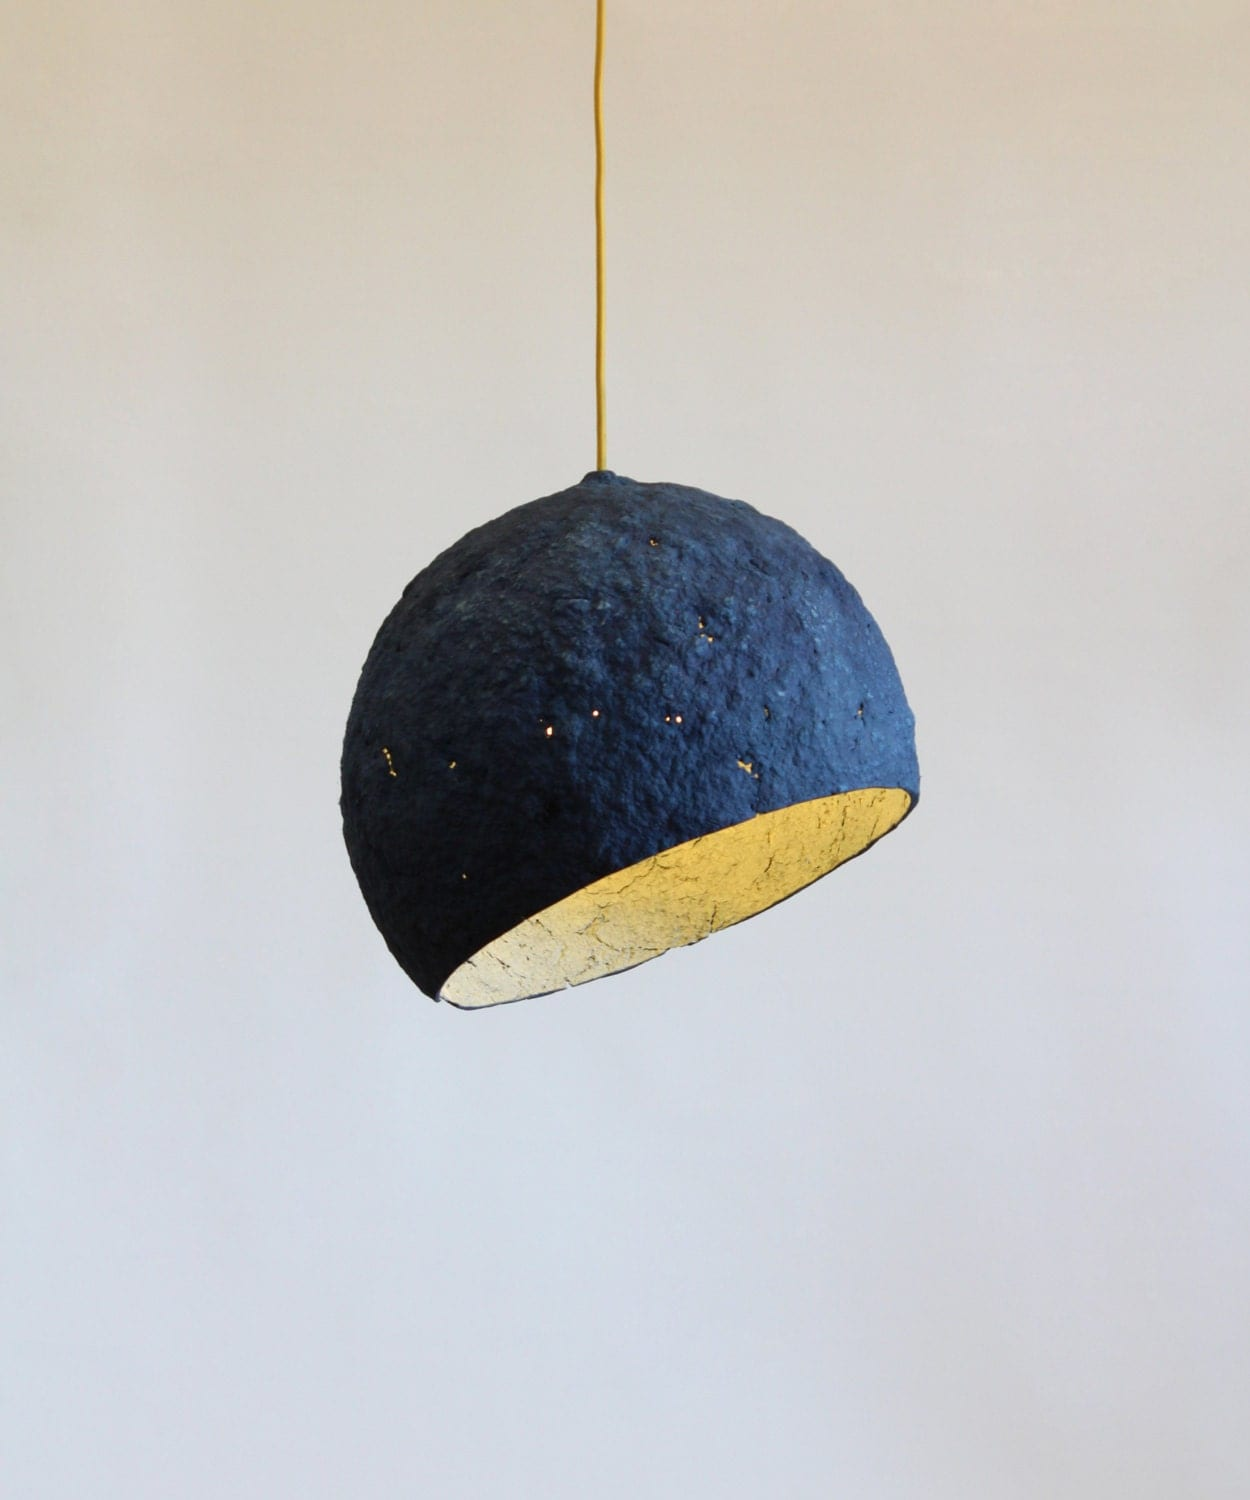 paper mache lamp pluto lamp hanging lamp pendant by crearedesign. Black Bedroom Furniture Sets. Home Design Ideas